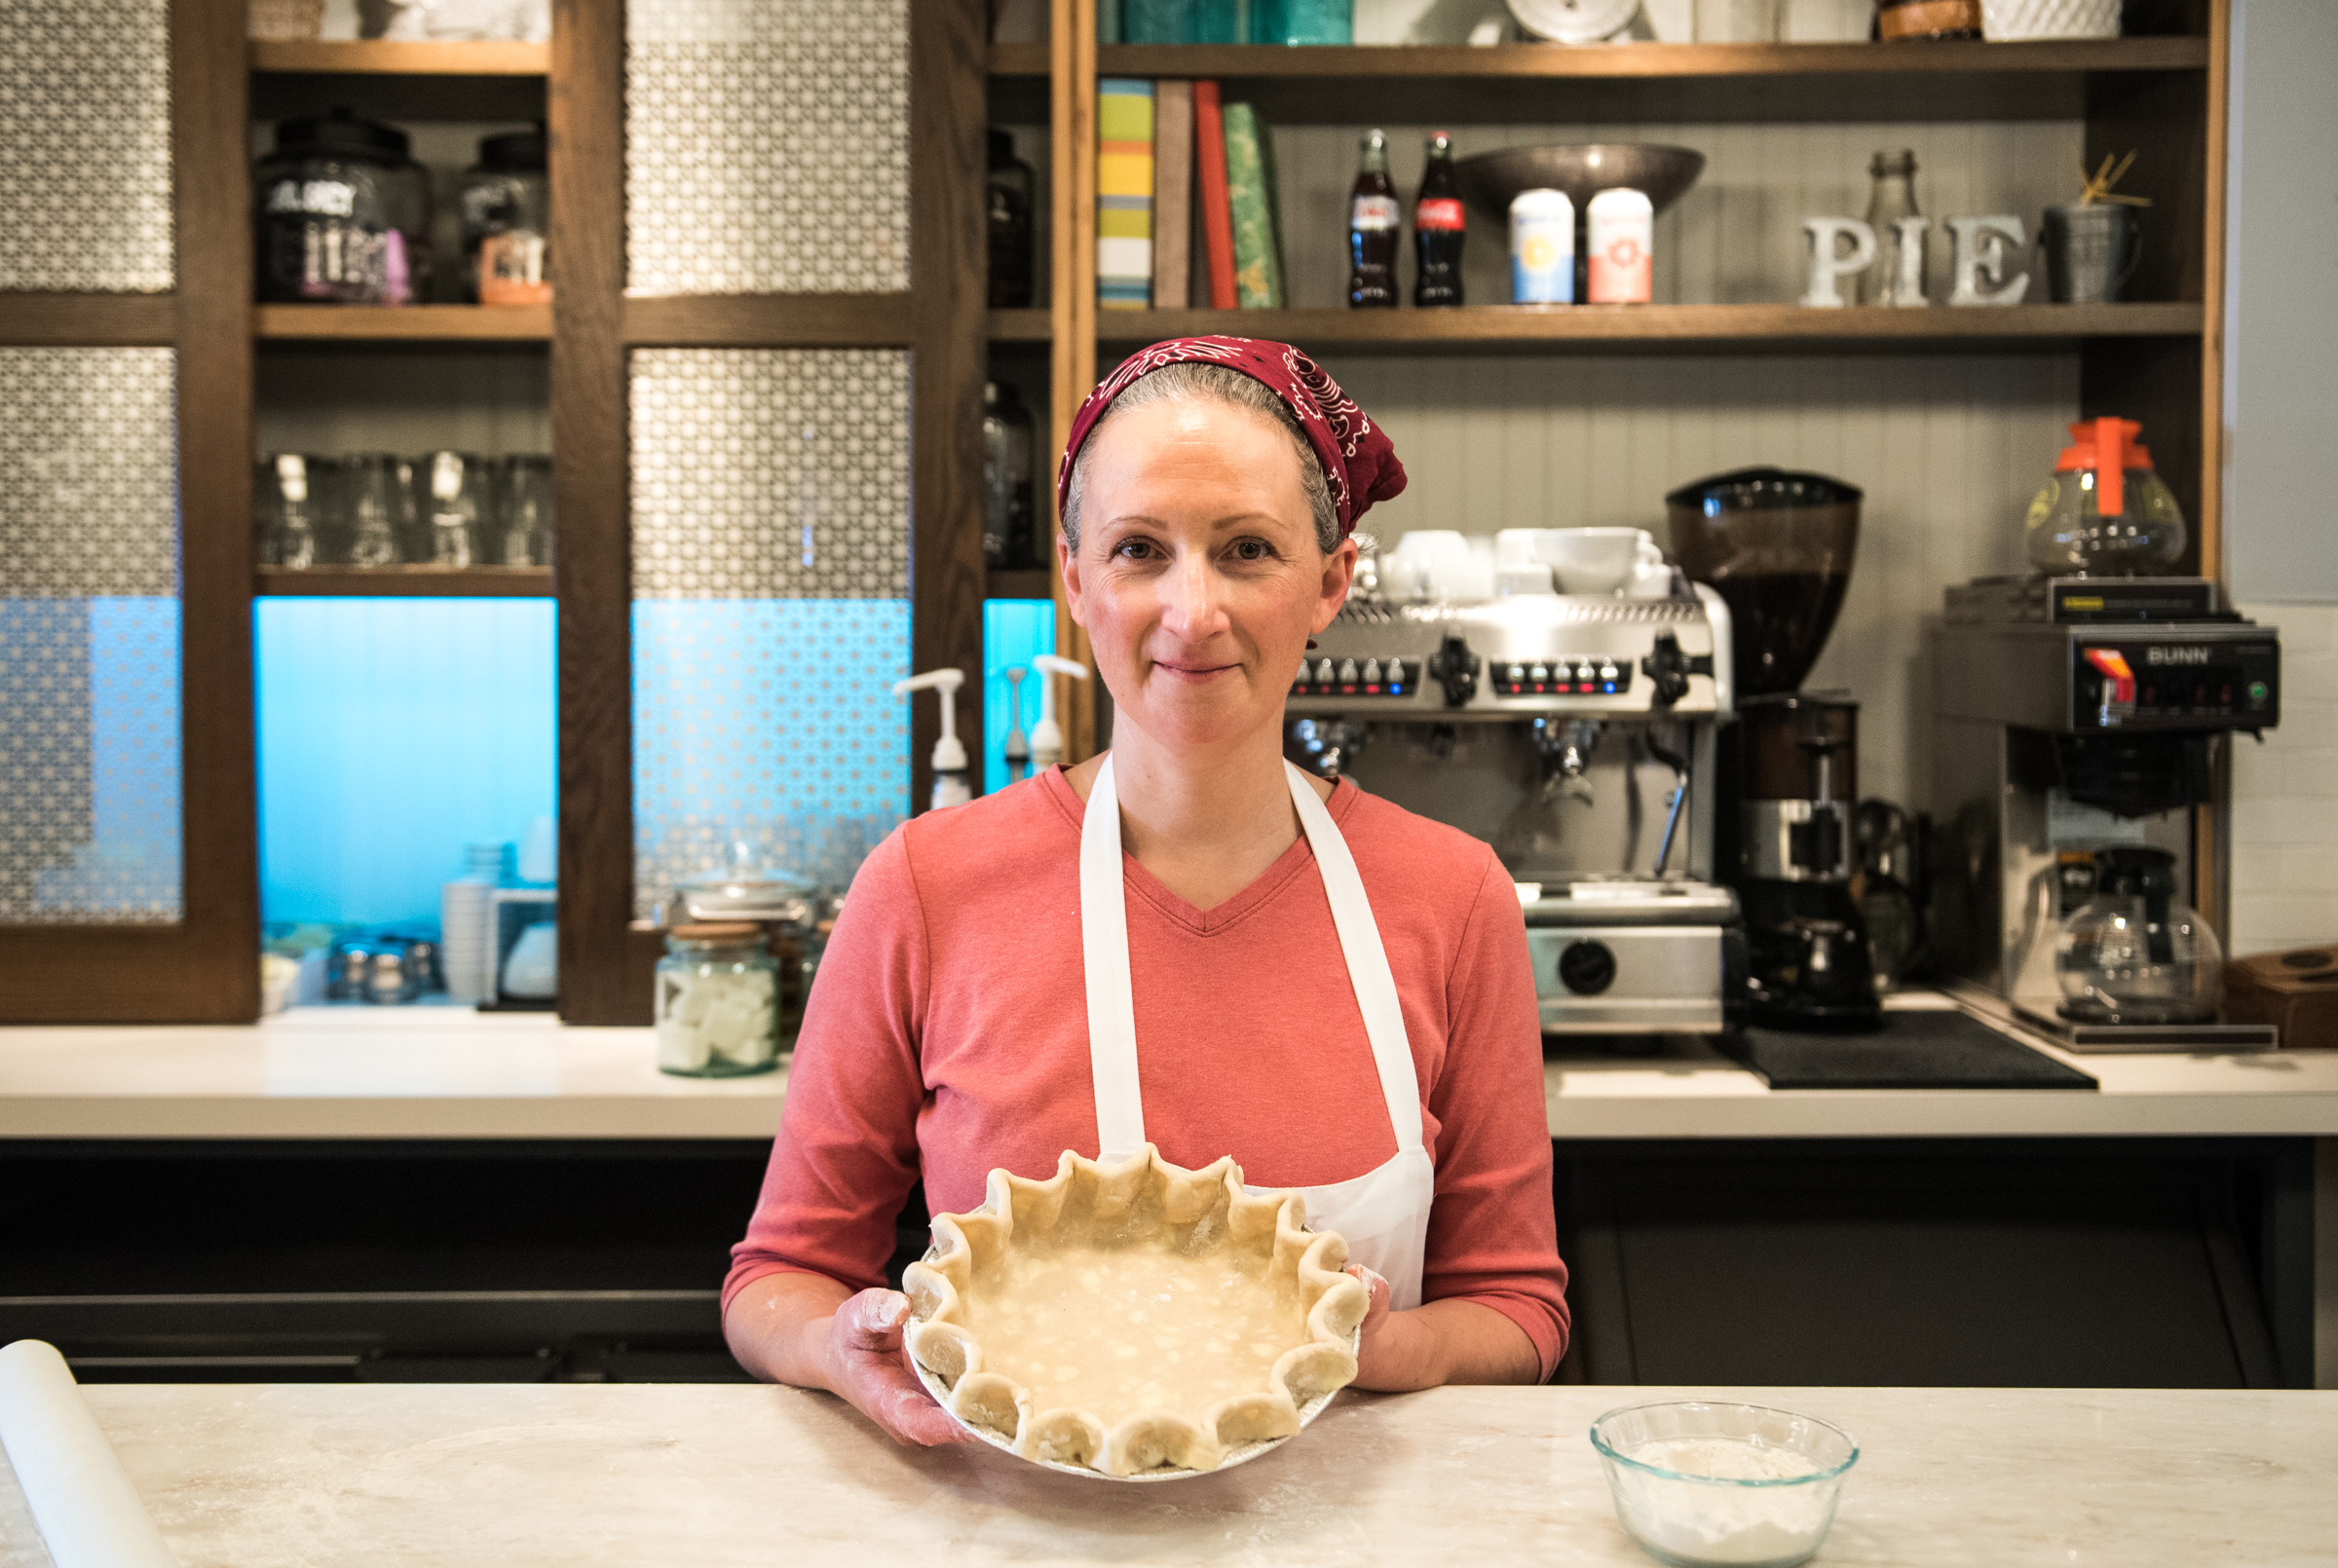 Magpie owner Holly Riccardi holds a pie crust ready for the oven. Riccardi notes that once the filling hits the crust, it´s important to start baking the pie immediately.